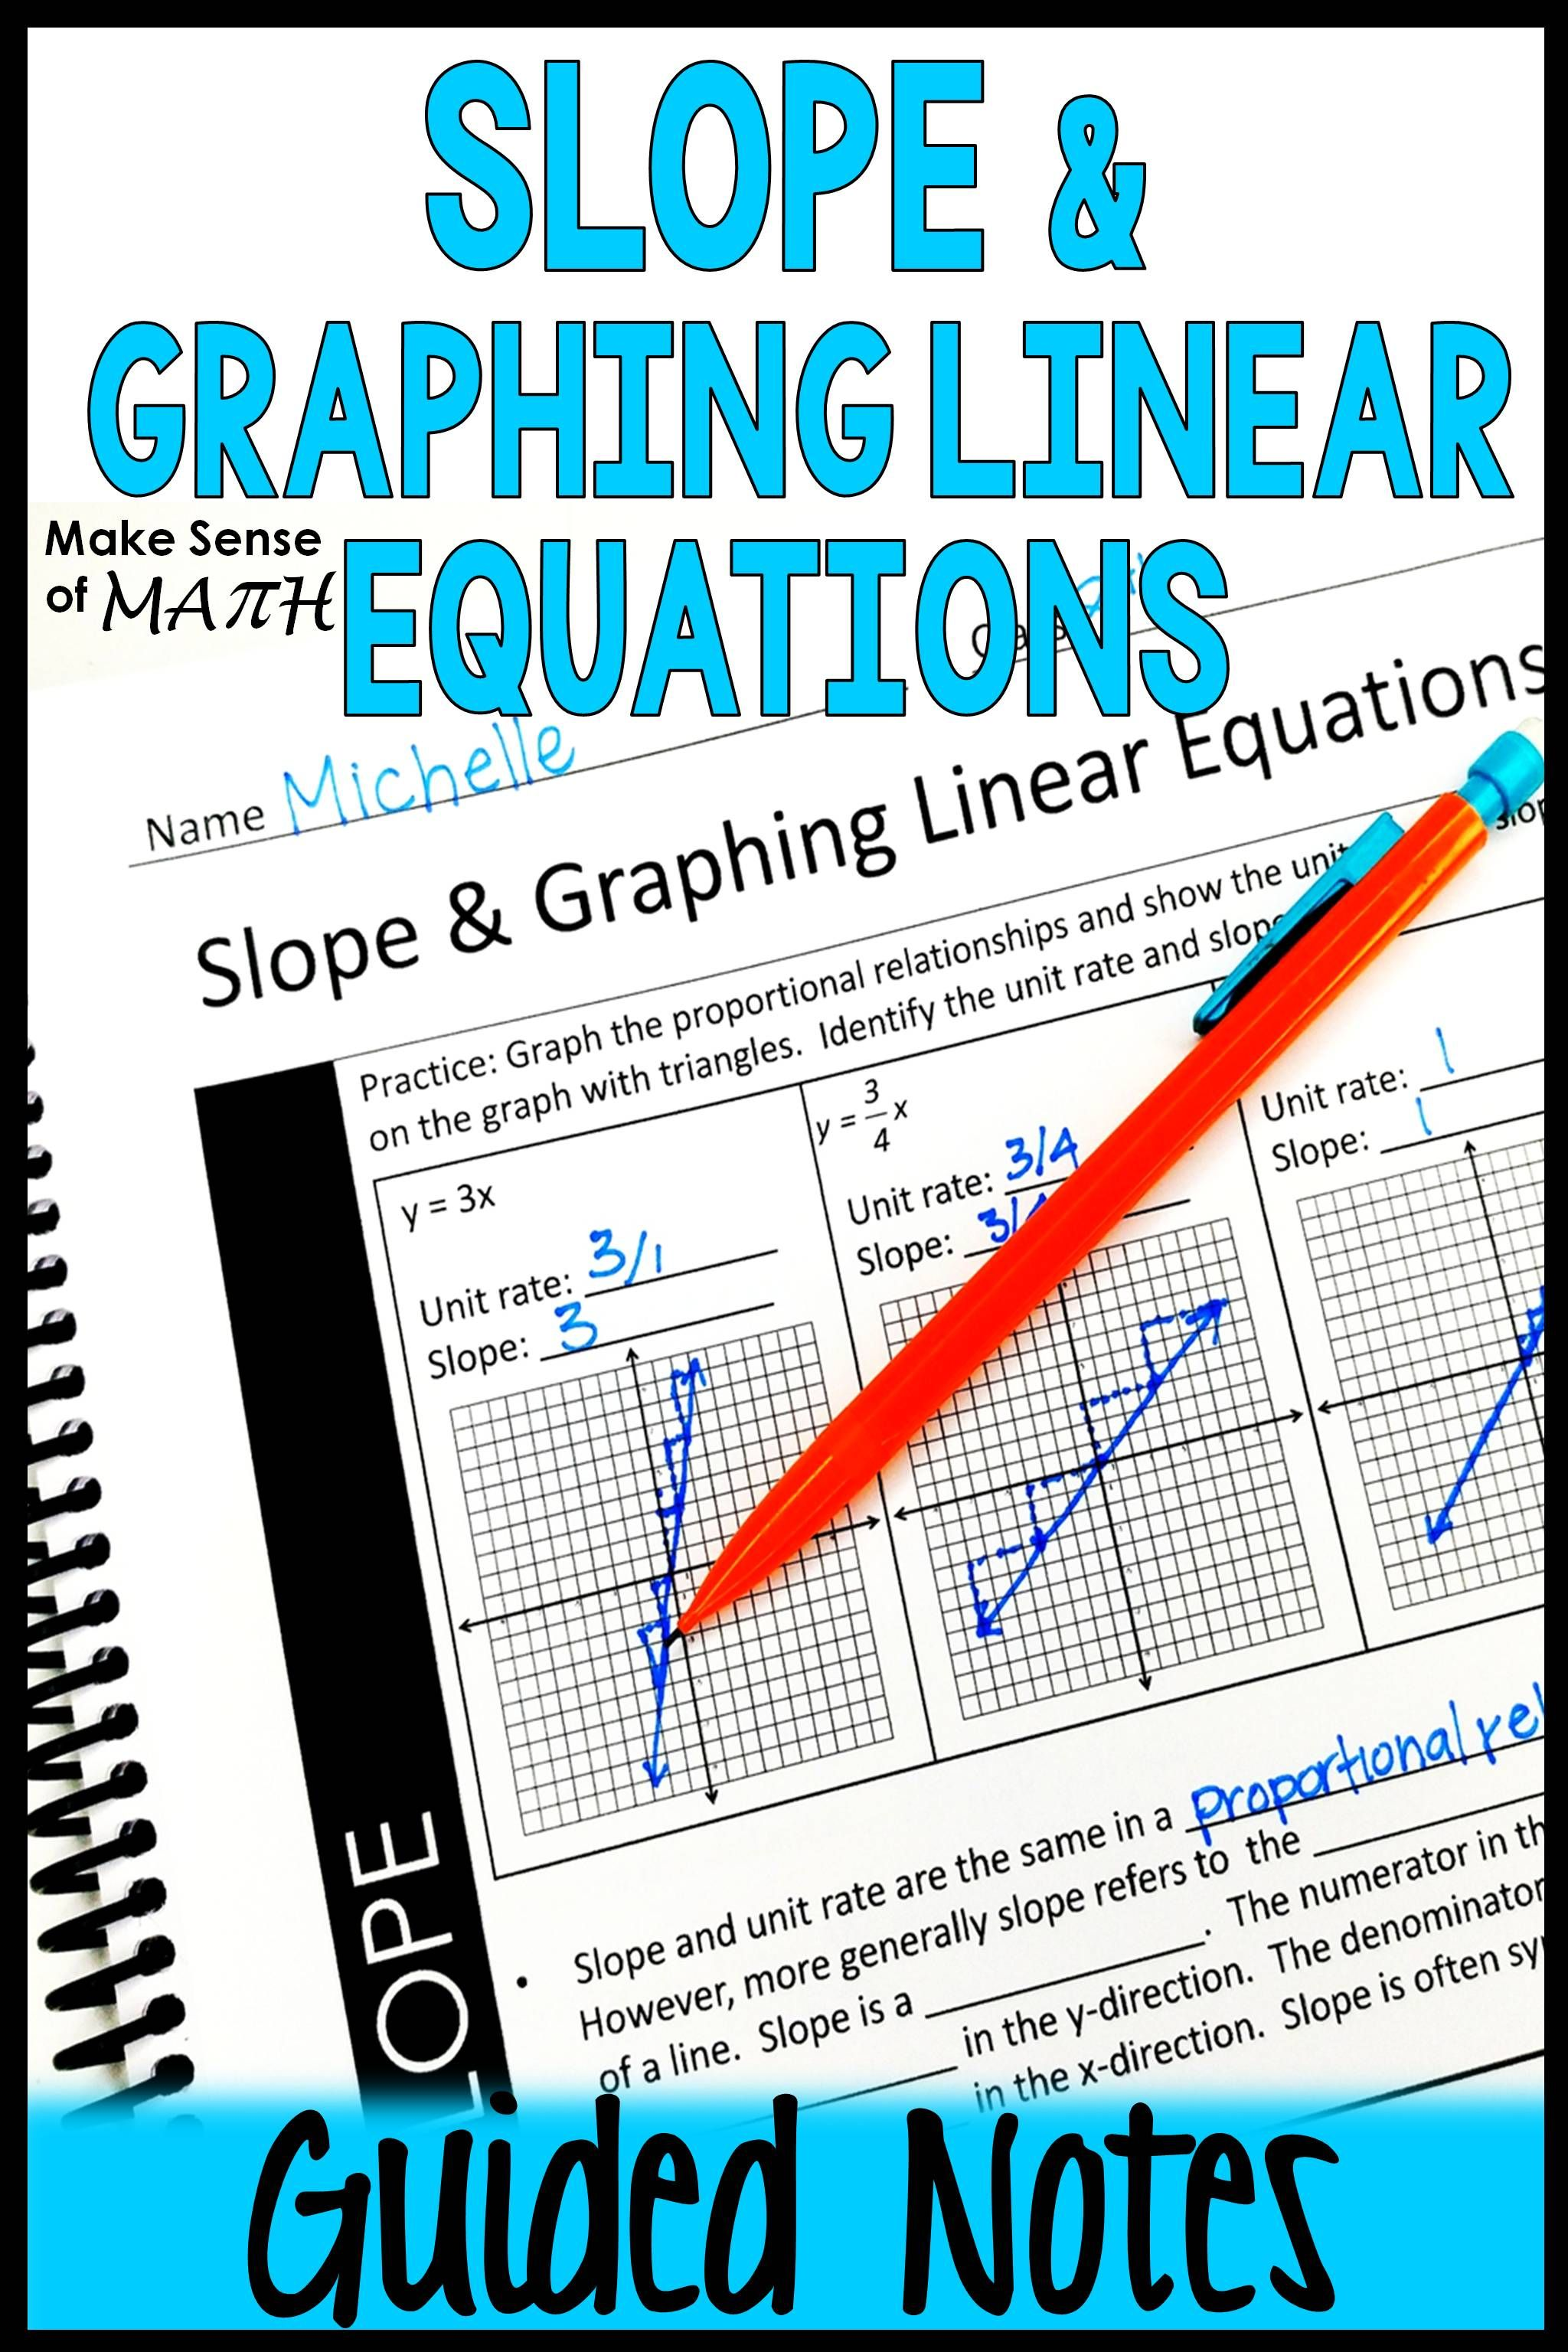 Graphing Linear Equations Guided Notes